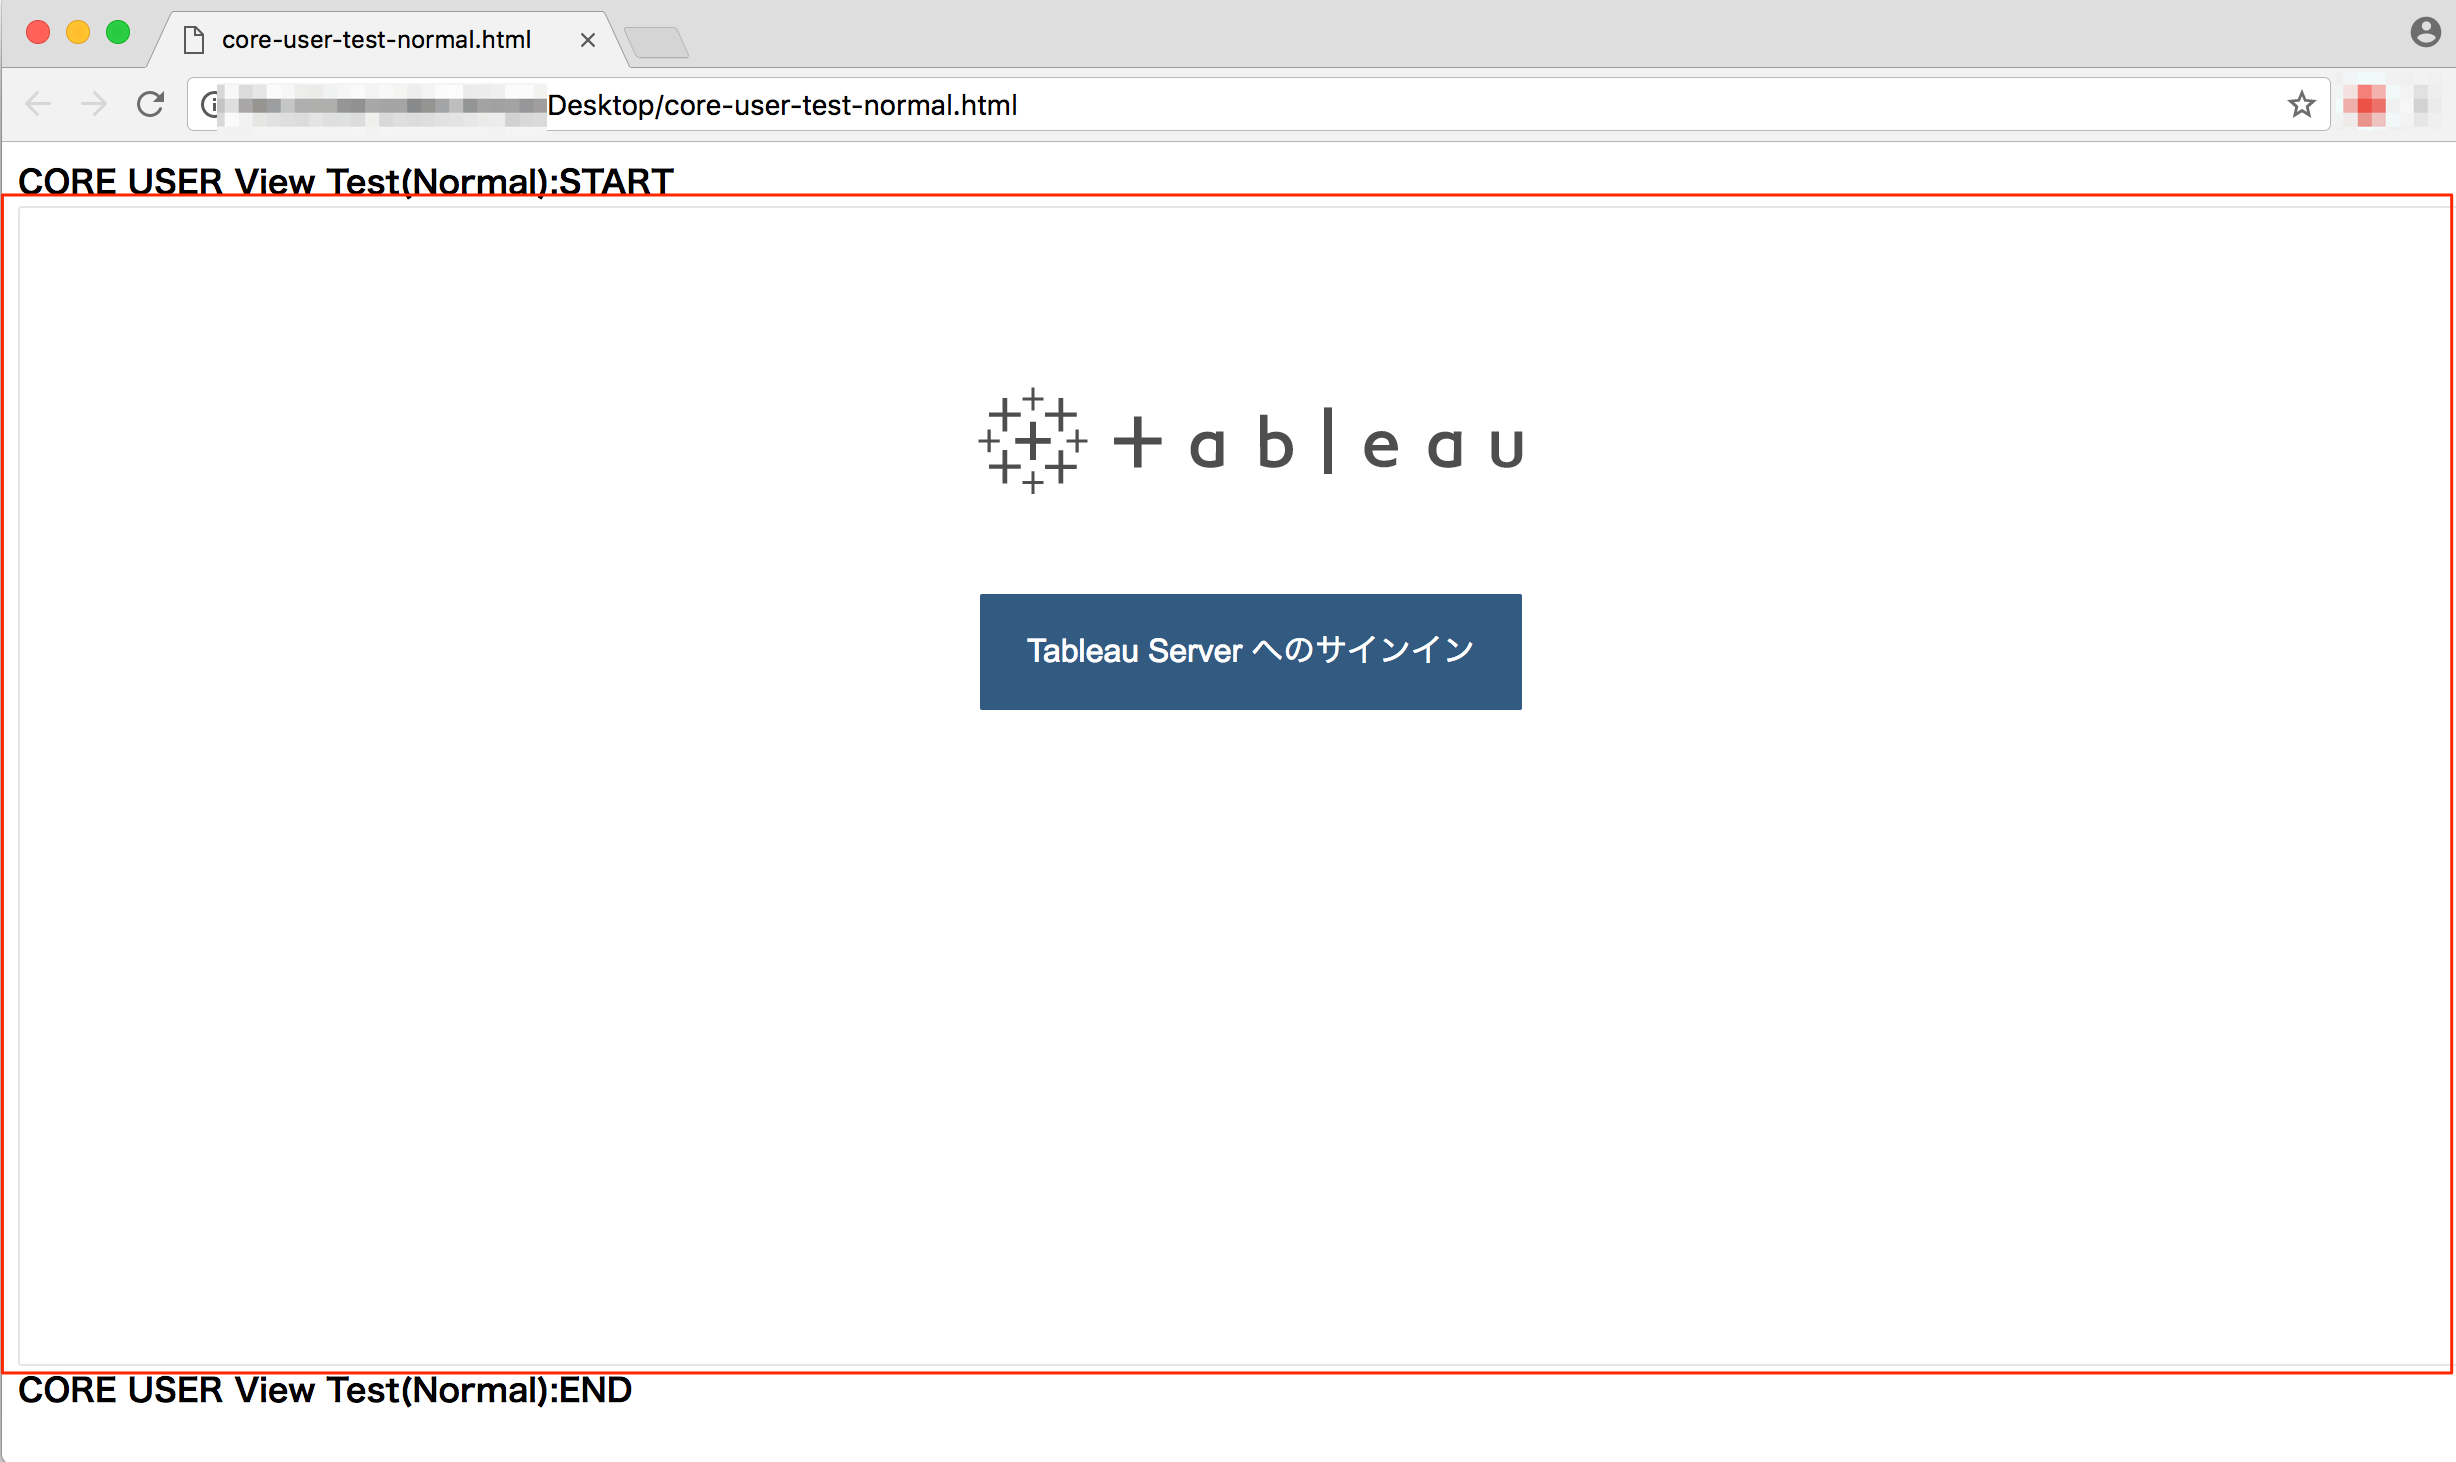 tableau-server-core-lisence-guest-user-option_23